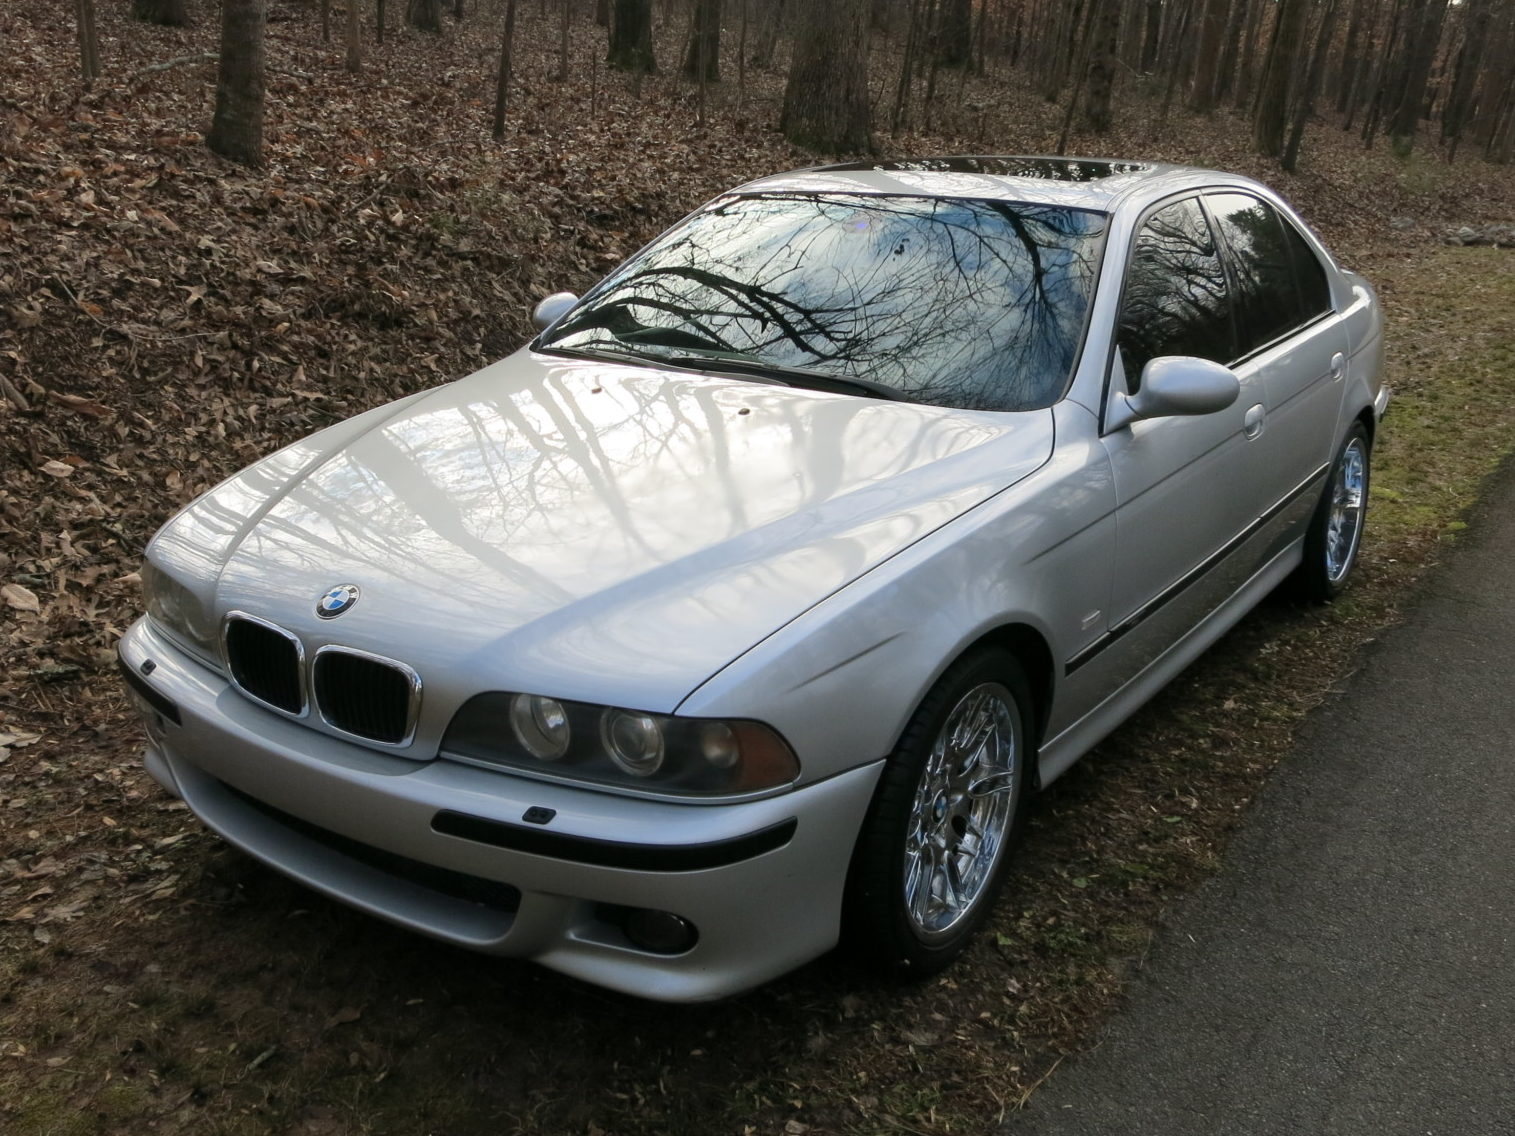 hight resolution of 2000 bmw m5 for sale on bat auctions sold for 20 000 on february 8 2019 lot 16 177 bring a trailer